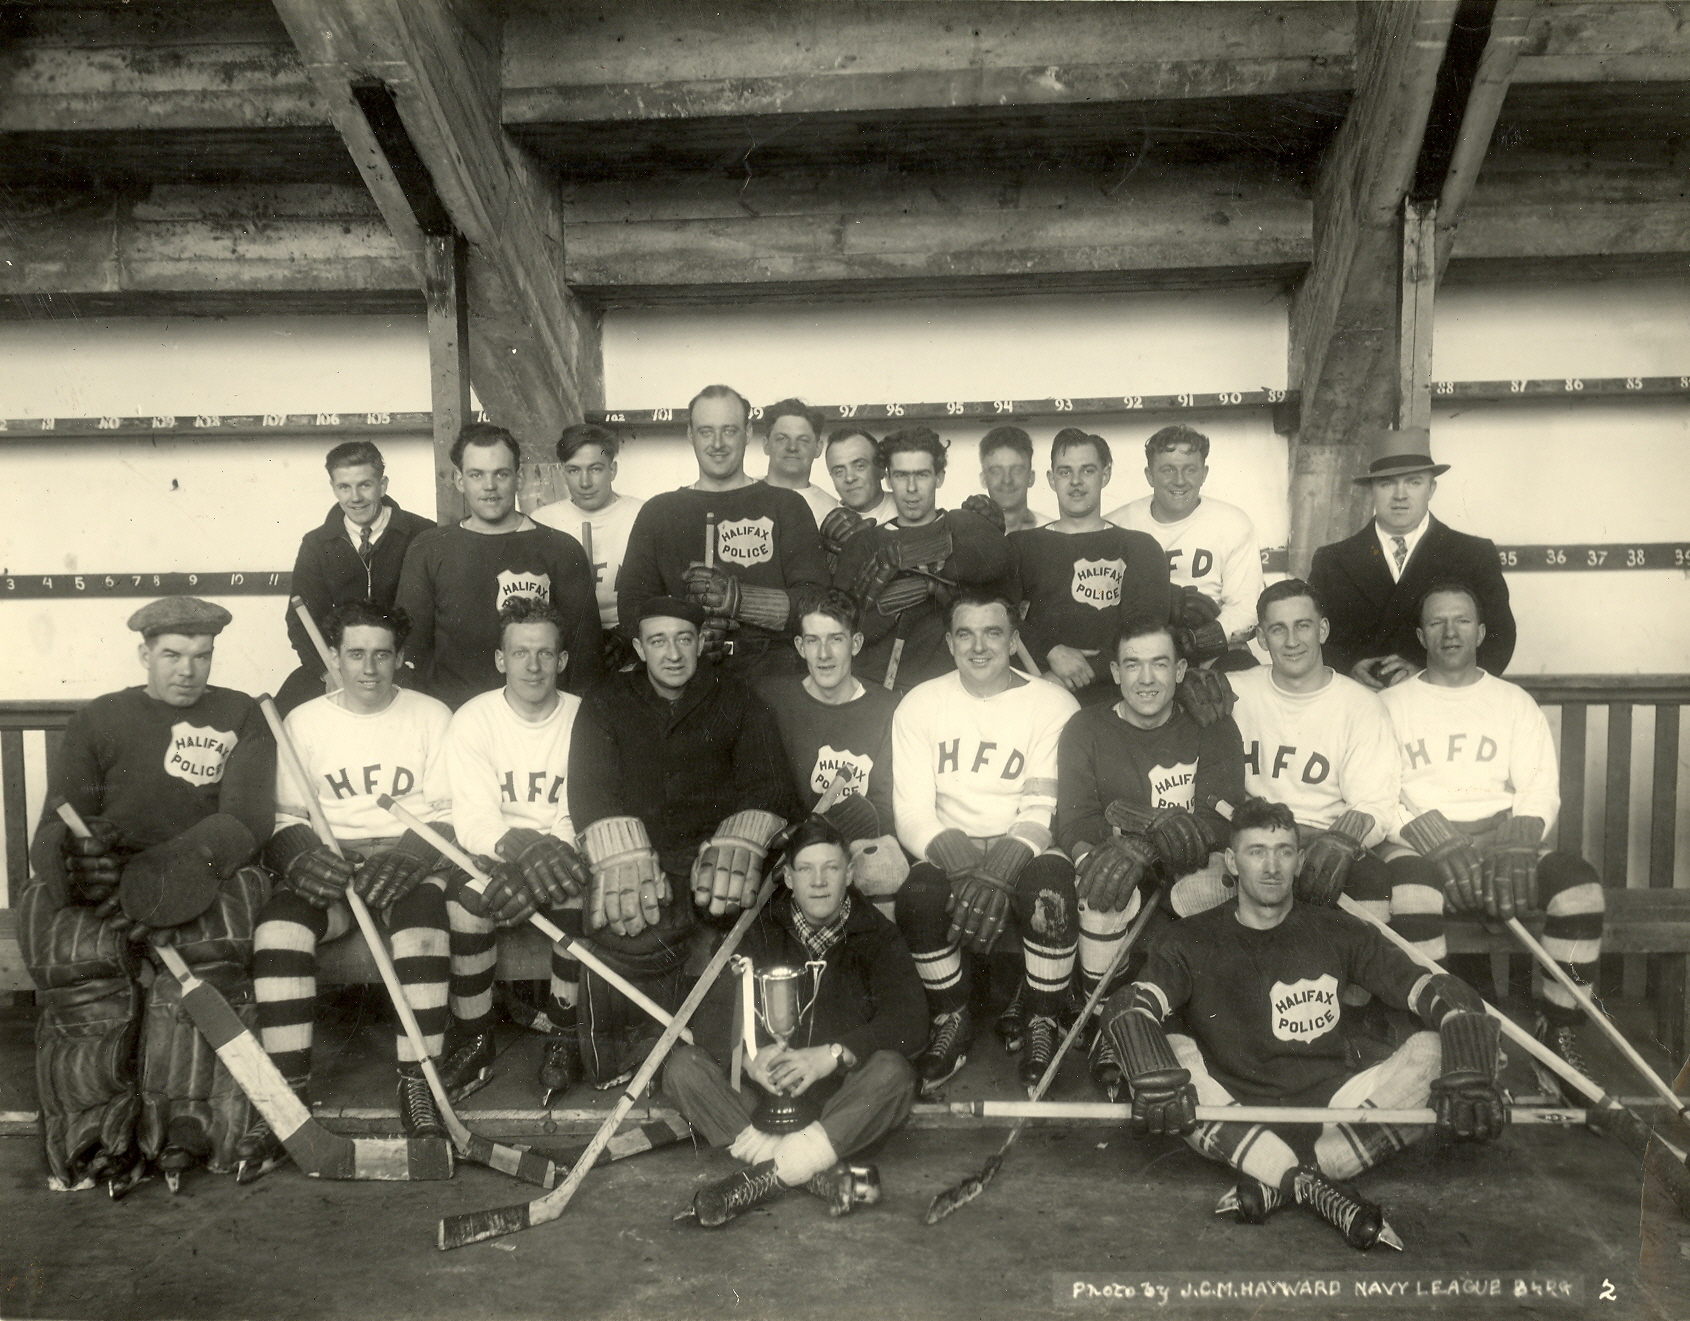 Black and white photograph of a hockey team